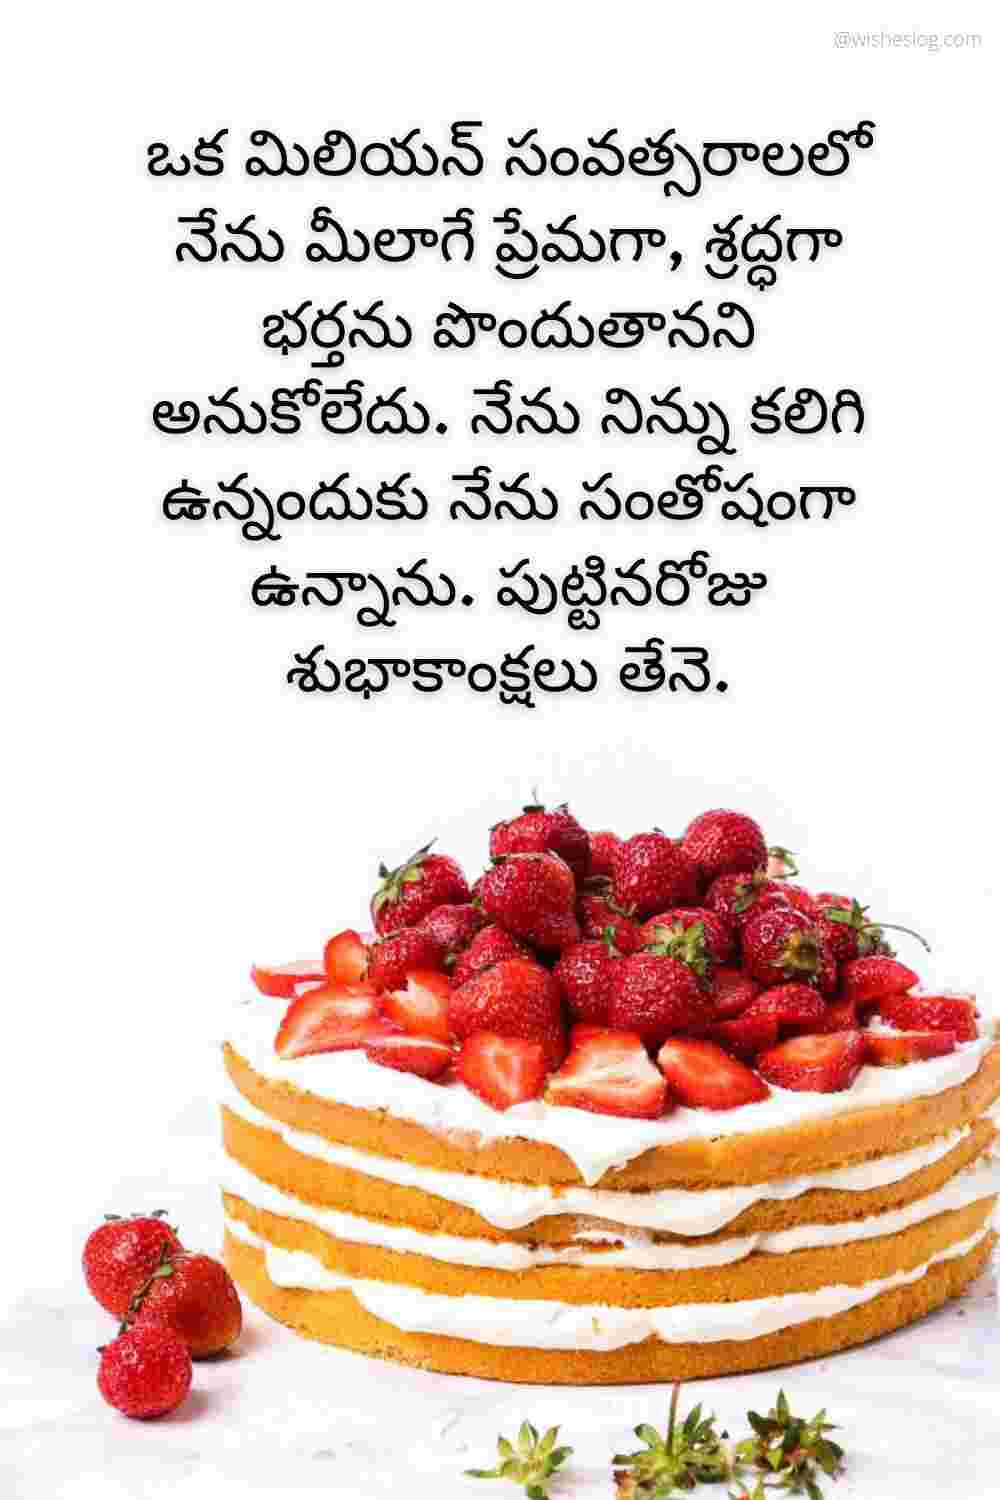 birthday wishes in telugu images for husband